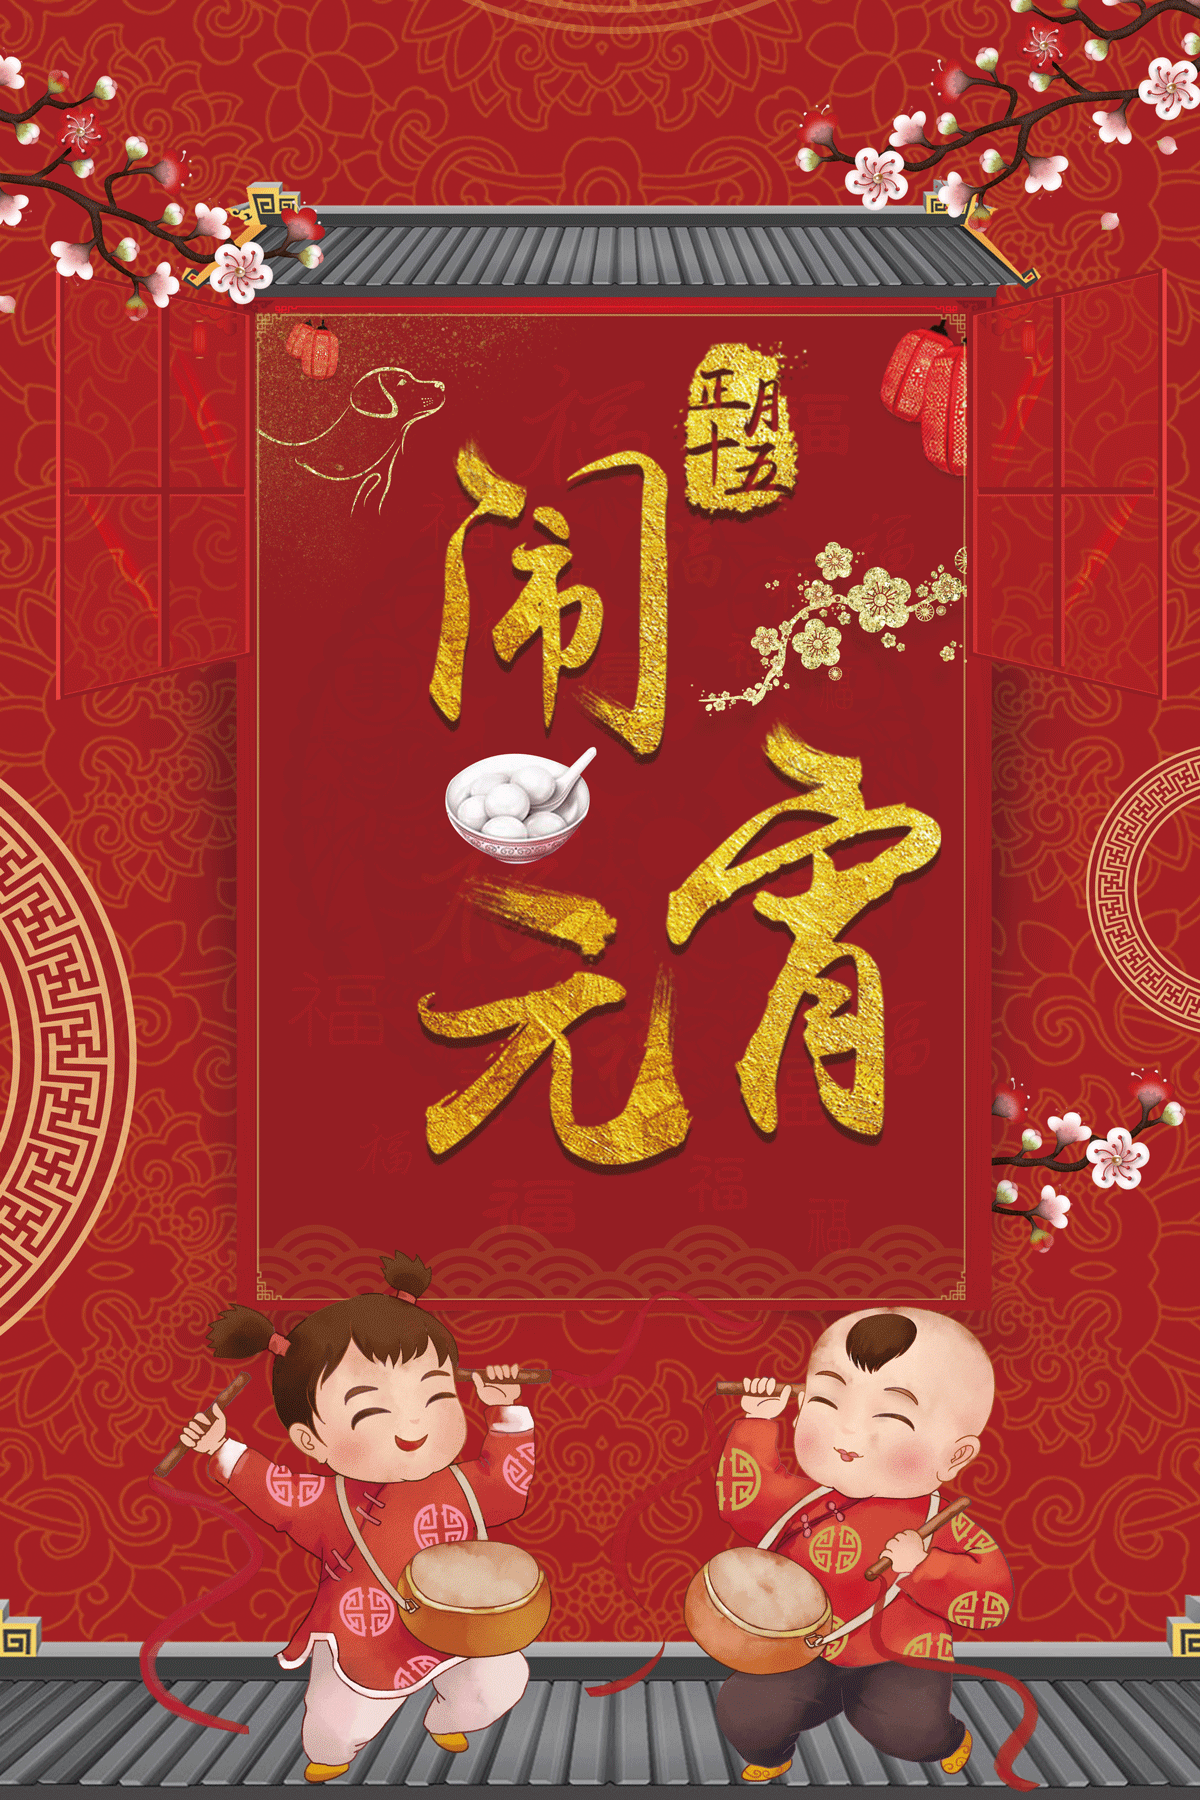 chinesefontdesign.com 2018 02 13 08 47 06 440971 Poster design for dog year lantern festival China PSD File Free Download Spring Festival psd New Year posters lanterns hotel Happy New Year full year food posters full year food festival Dog Year dinner catering